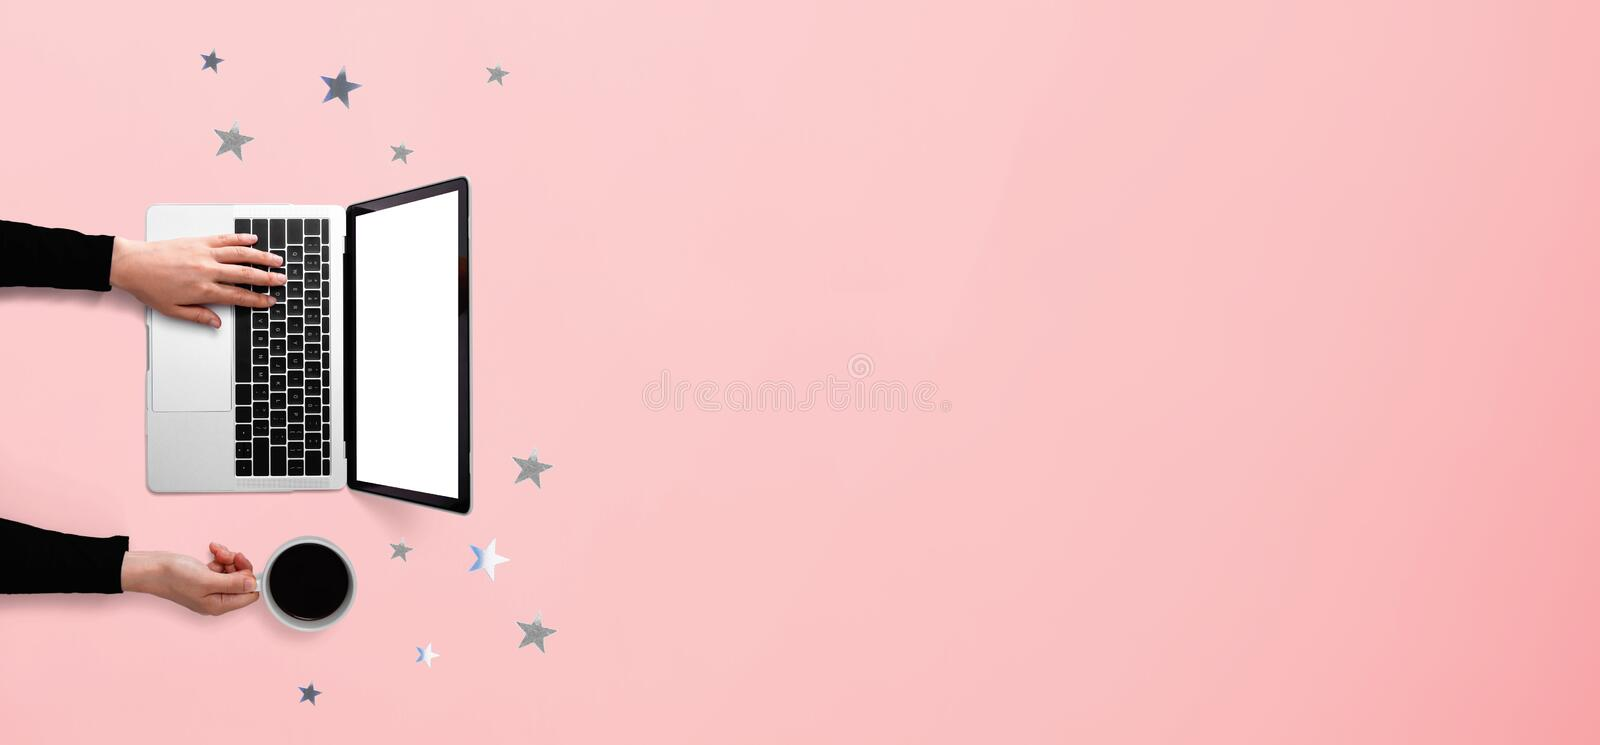 Star ornaments with person using a laptop computer. Overhead view flat lay vector illustration